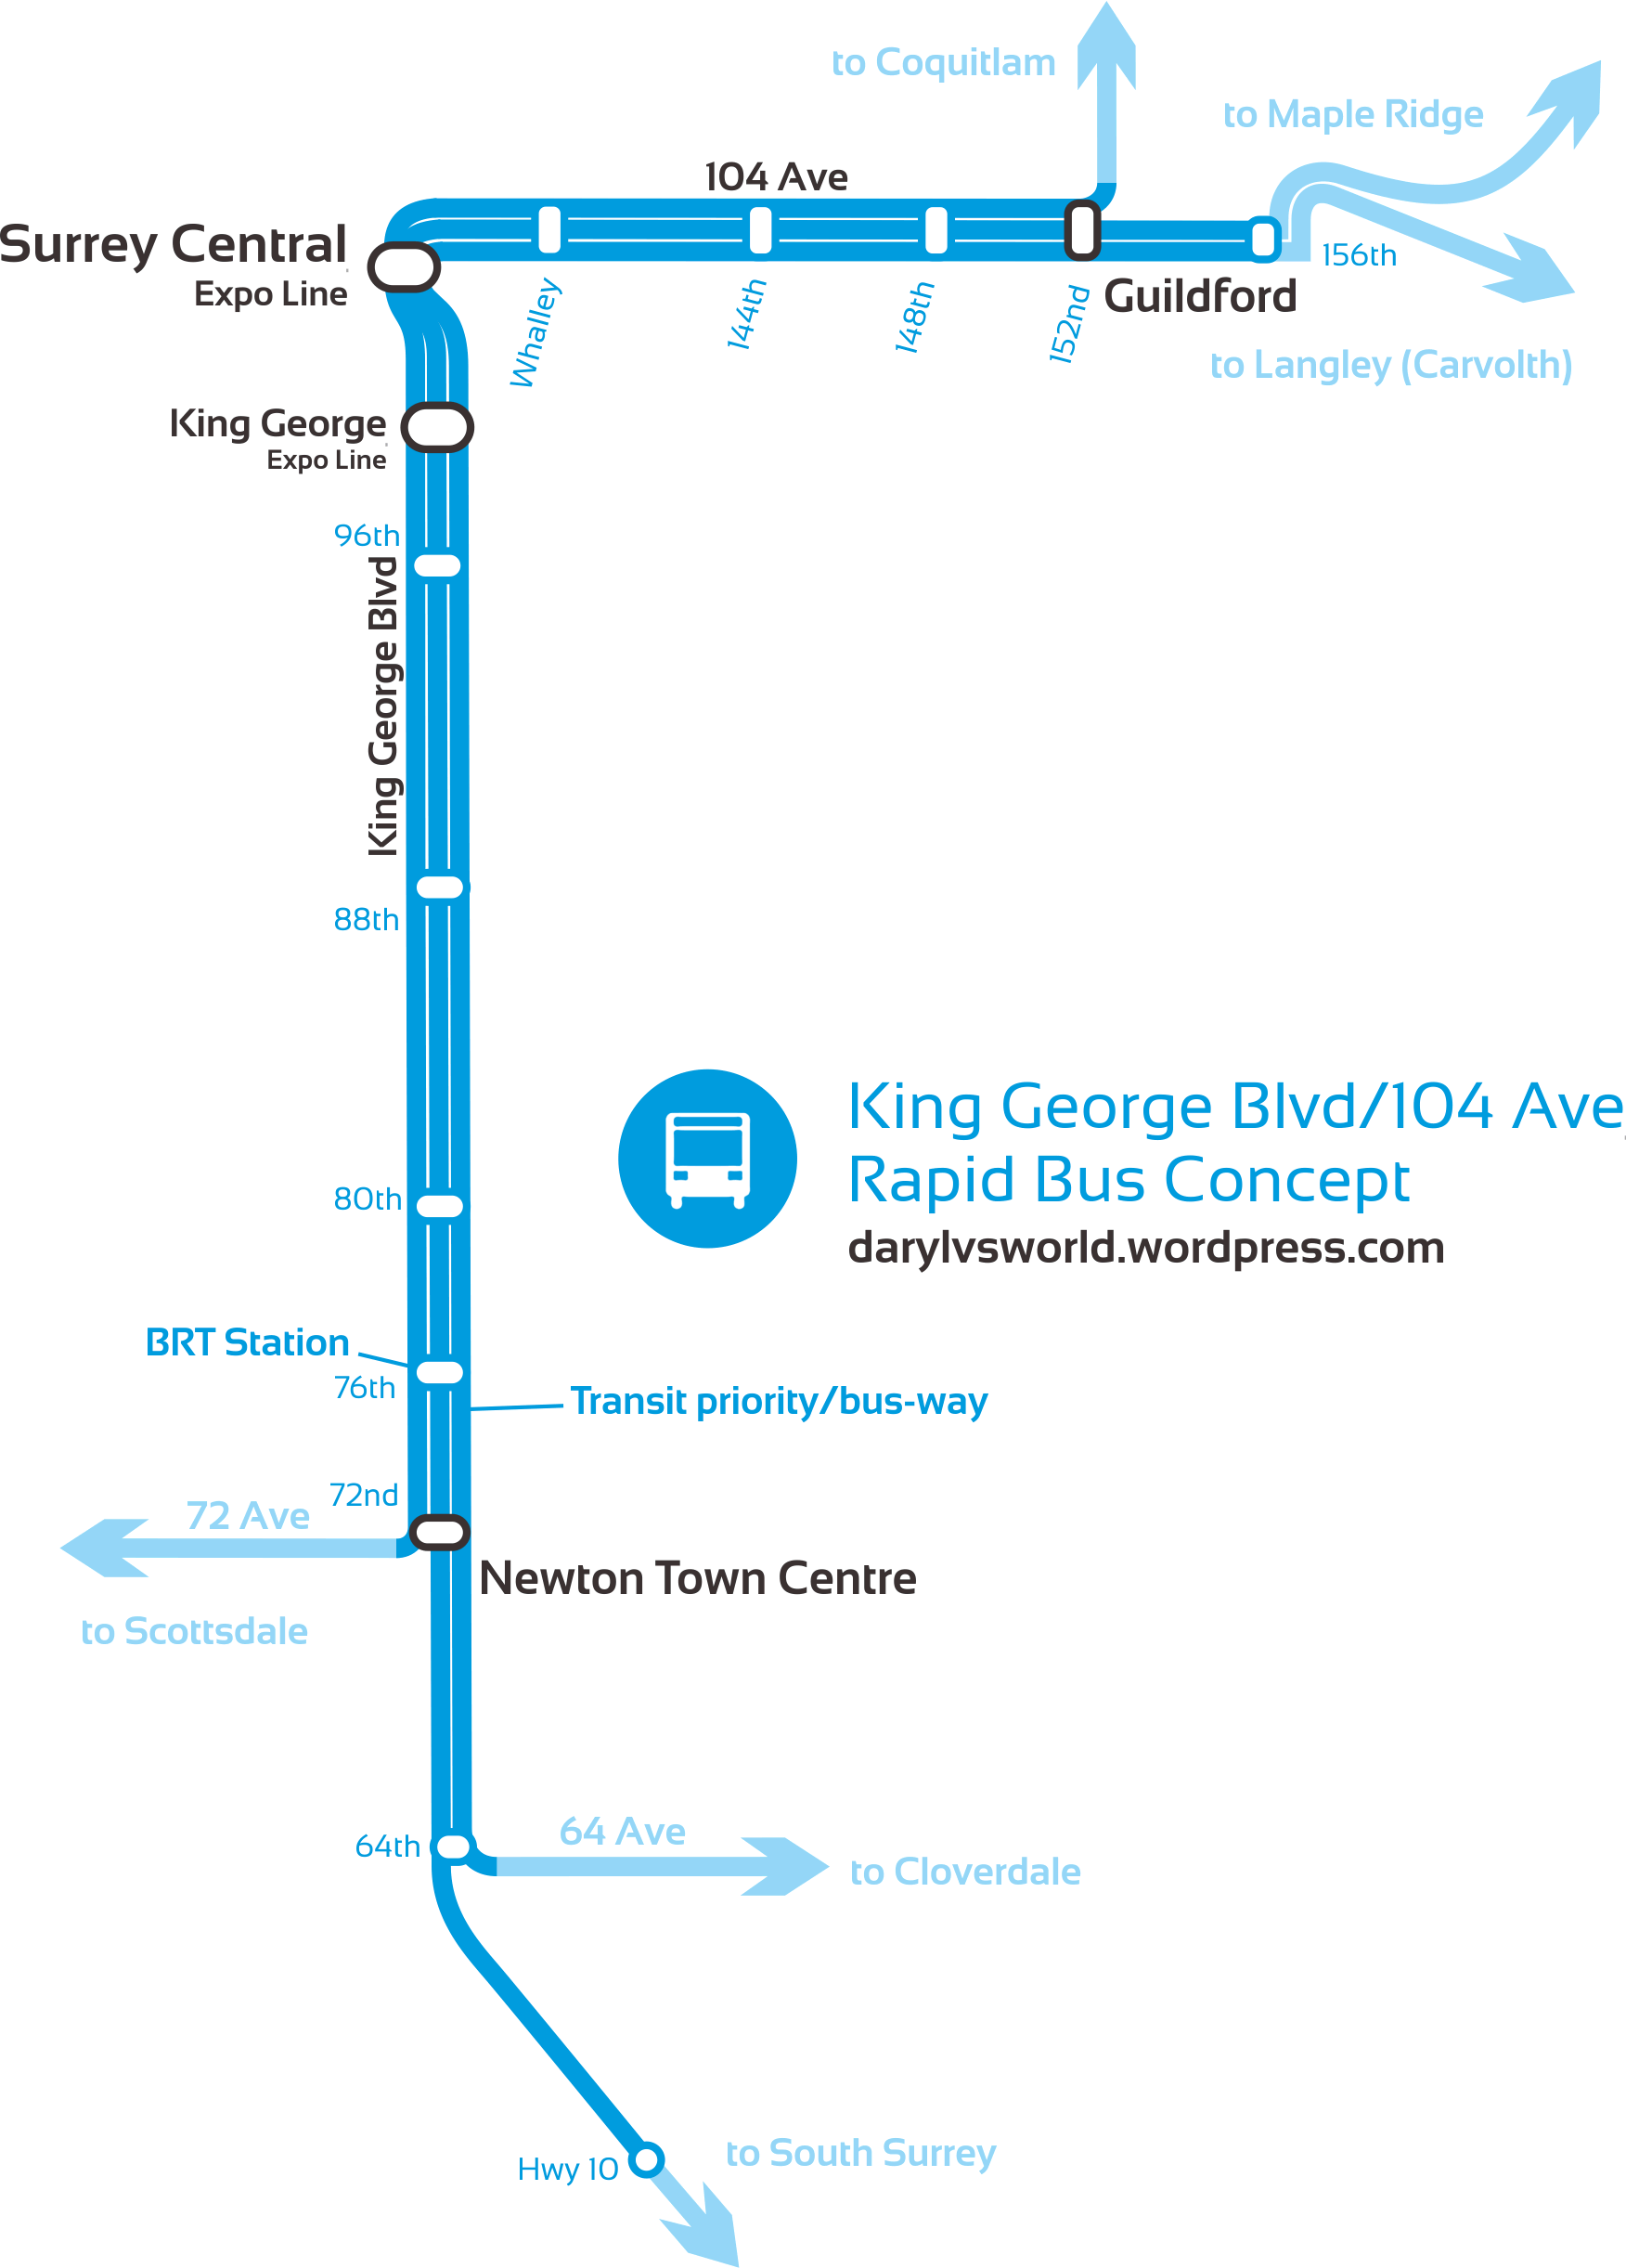 Concept image of rapid bus service instead of LRT on King George Blvd/104 Ave. Note the continuation of the 3 different routes to allow direct connections to Cloverdale, Coquitlam and other communities. This is what's possible with BRT.